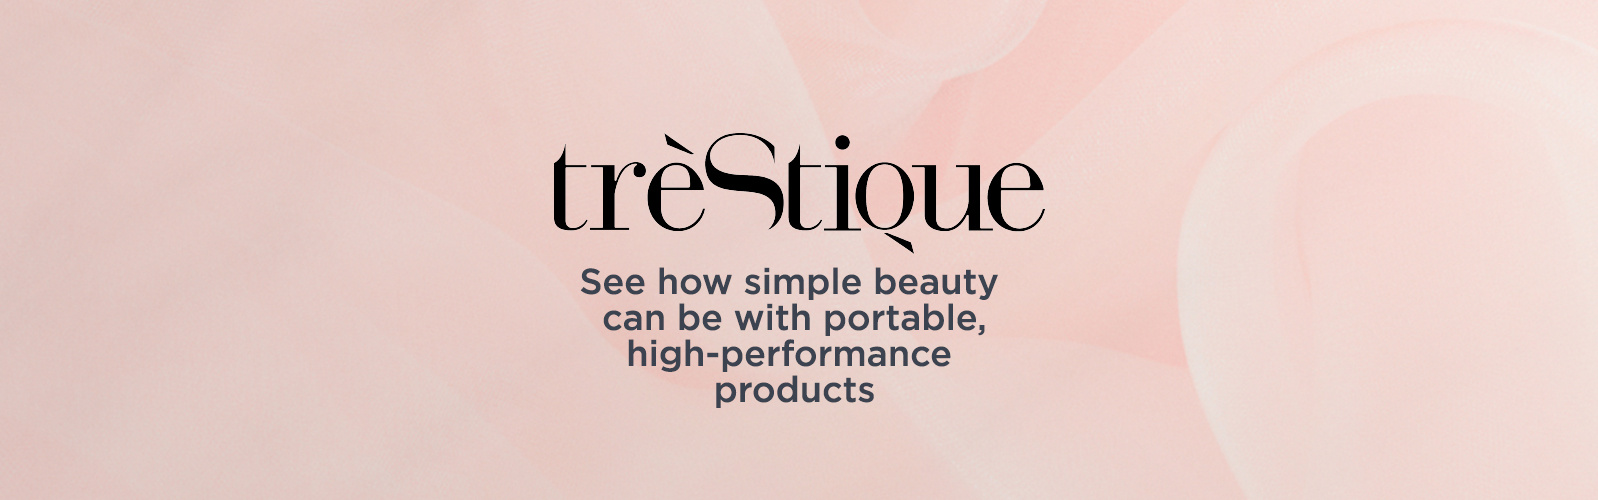 TrèStiQue. See how simple beauty can be with portable, high-performance products